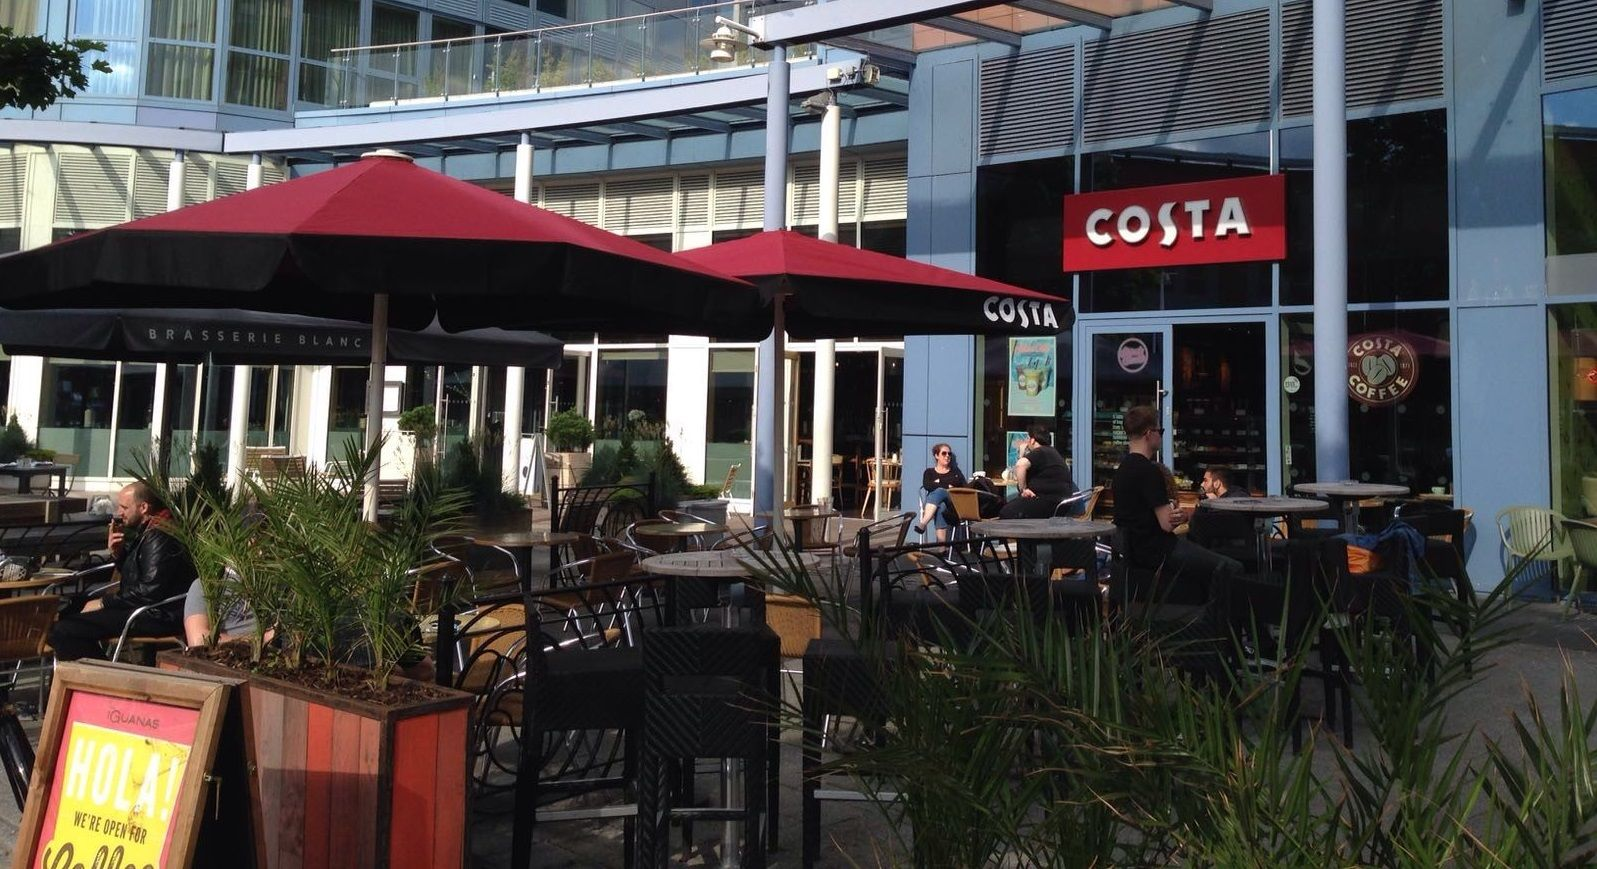 Costa Coffee Gunwharf Quays In Portsmouth Have Now Got Their 3m X 3m Atlas Design Giant Umbrellas Portsmouth Costa Coffee Umbrella